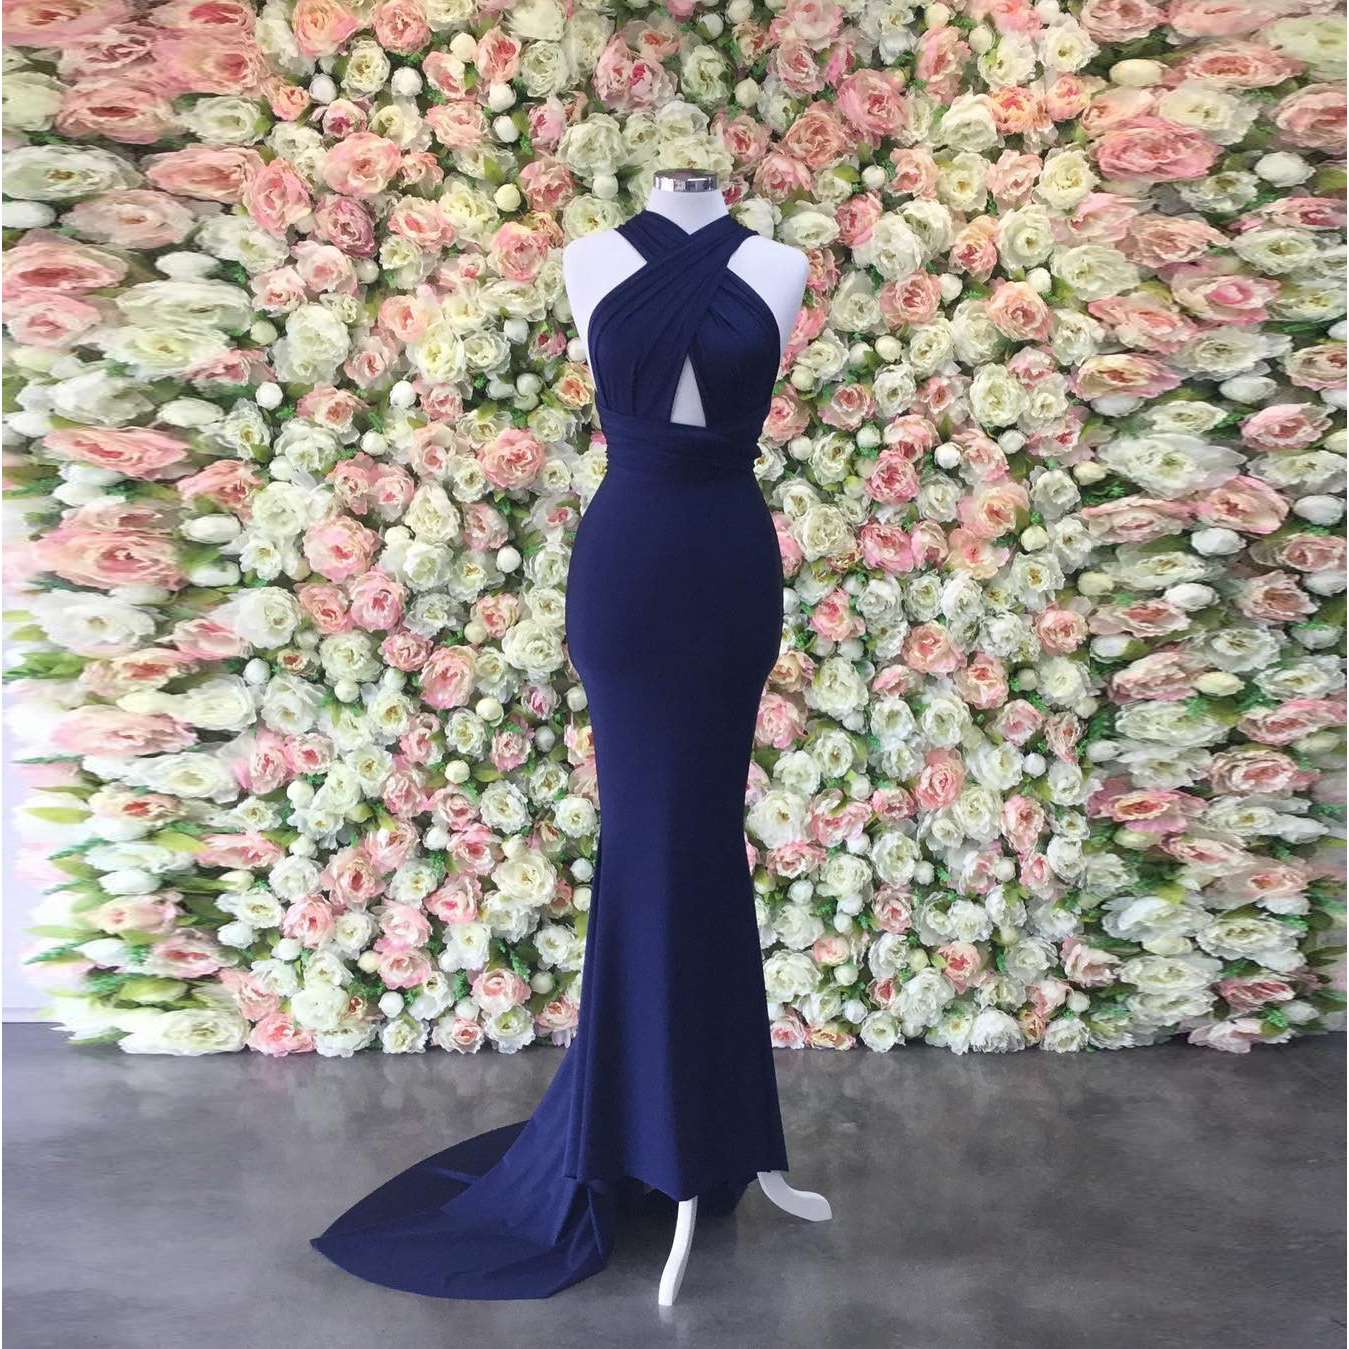 Halter Formal Evening Gown Navy Blue Backless Prom Dress With Cut ...